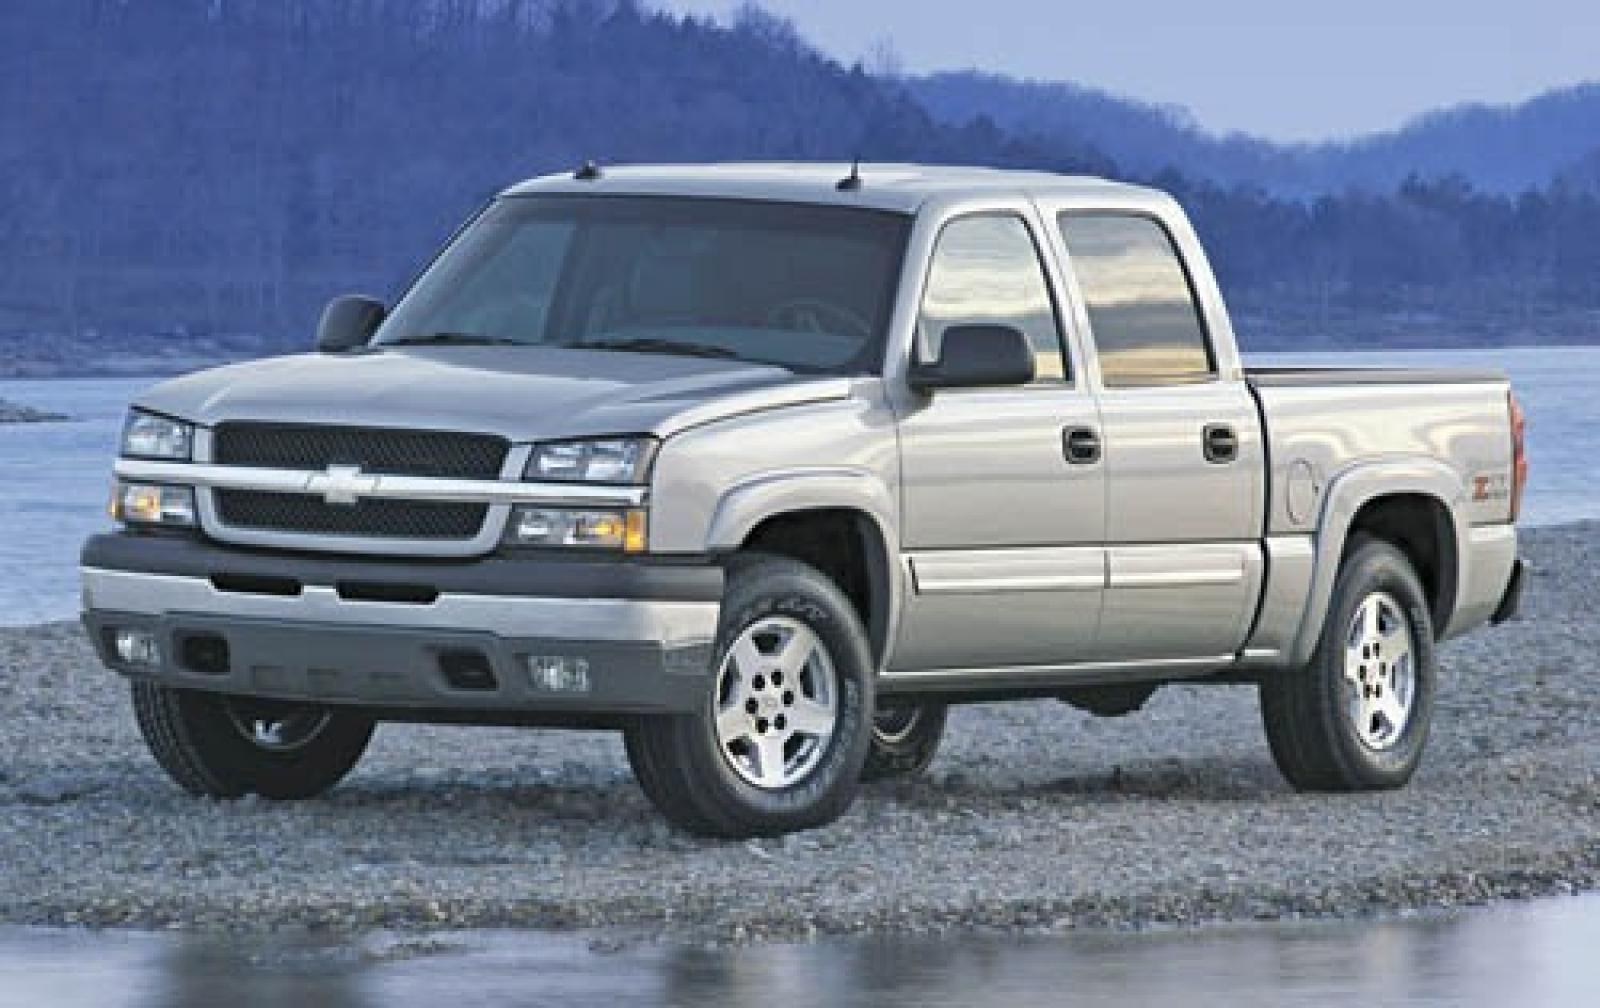 2005 Chevrolet Silverado 1500 Information And Photos Zombiedrive 2000 Gmc Sierra Blower Motor Wiring Diagram 800 1024 1280 1600 Origin